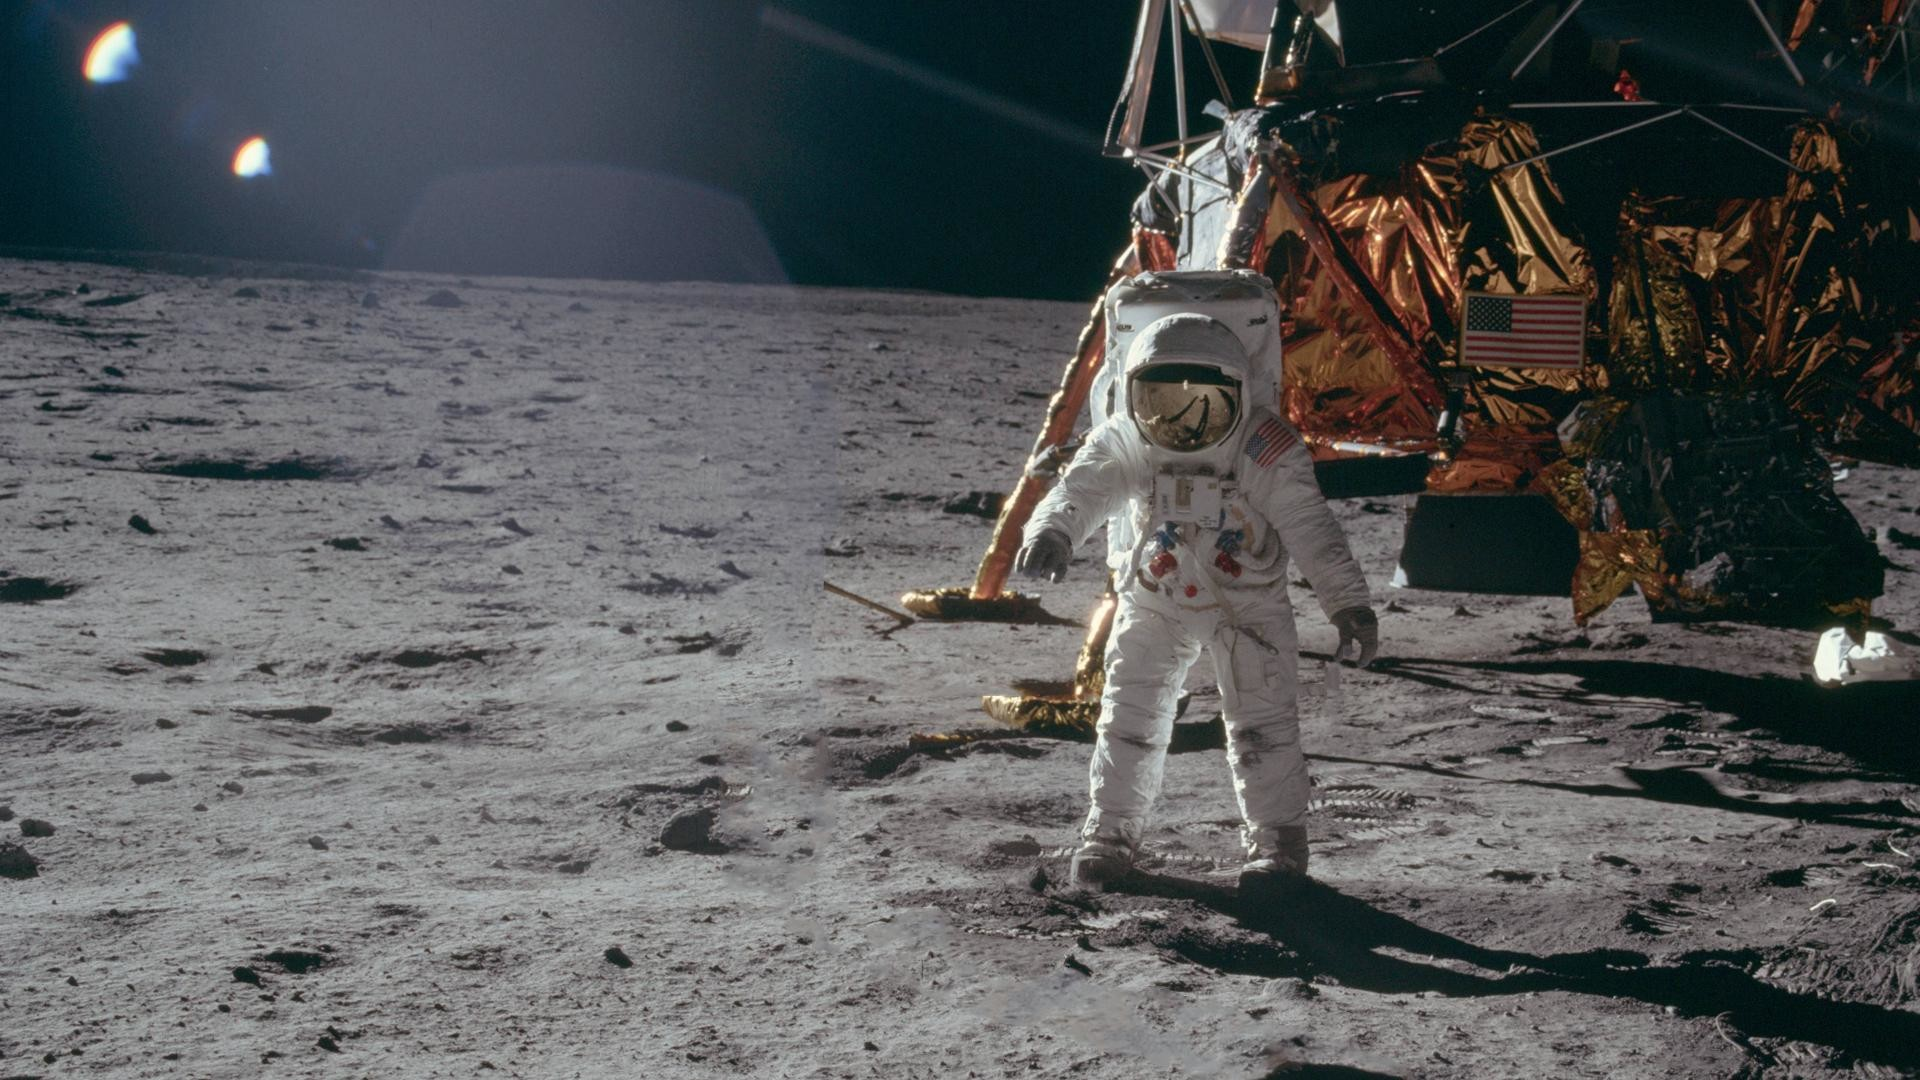 1920x1080 Astronaut Buzz Aldrin walks on the surface of the moon near the lunar  module 'Eagle'. Astronaut Neil Armstrong took this photograph with a lunar  surface ...